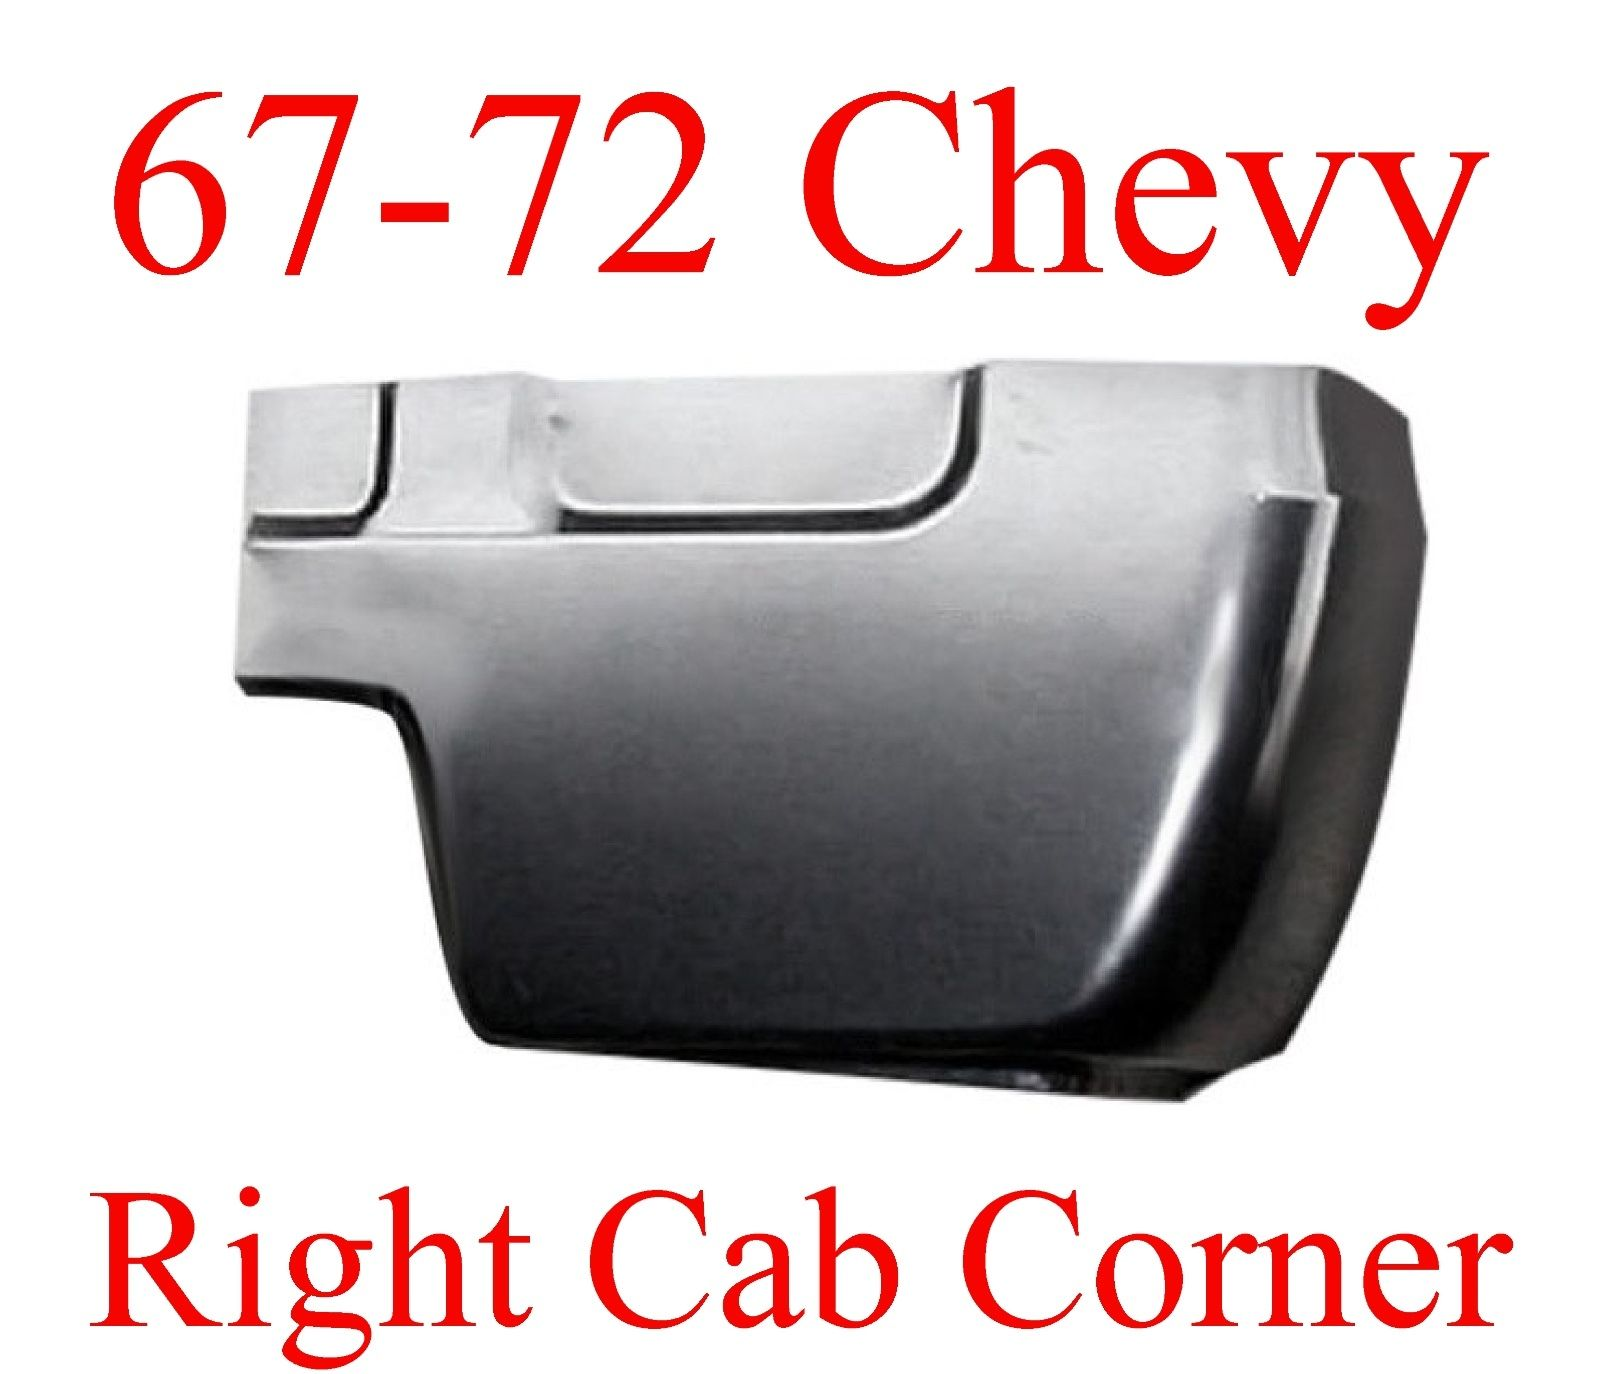 67 72 Chevy RIGHT Cab Corner